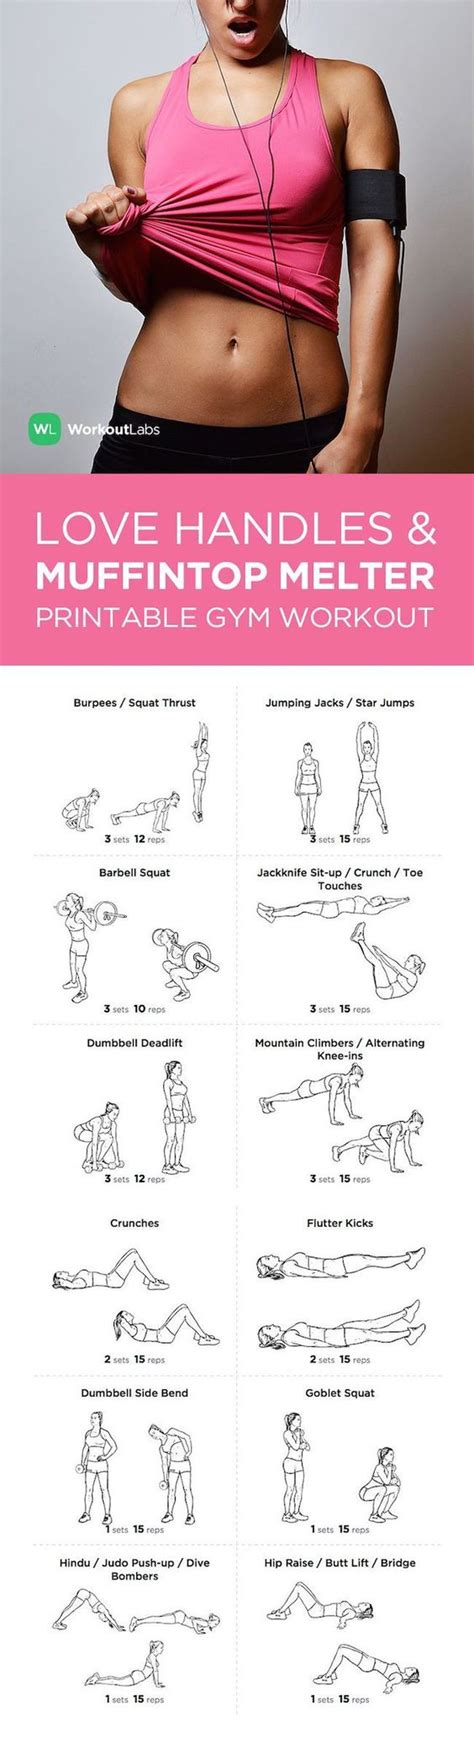 10 Top Exercises For Losing With 2 Bonus Exercises by Handles Muffin Top Melter Printable And Workout